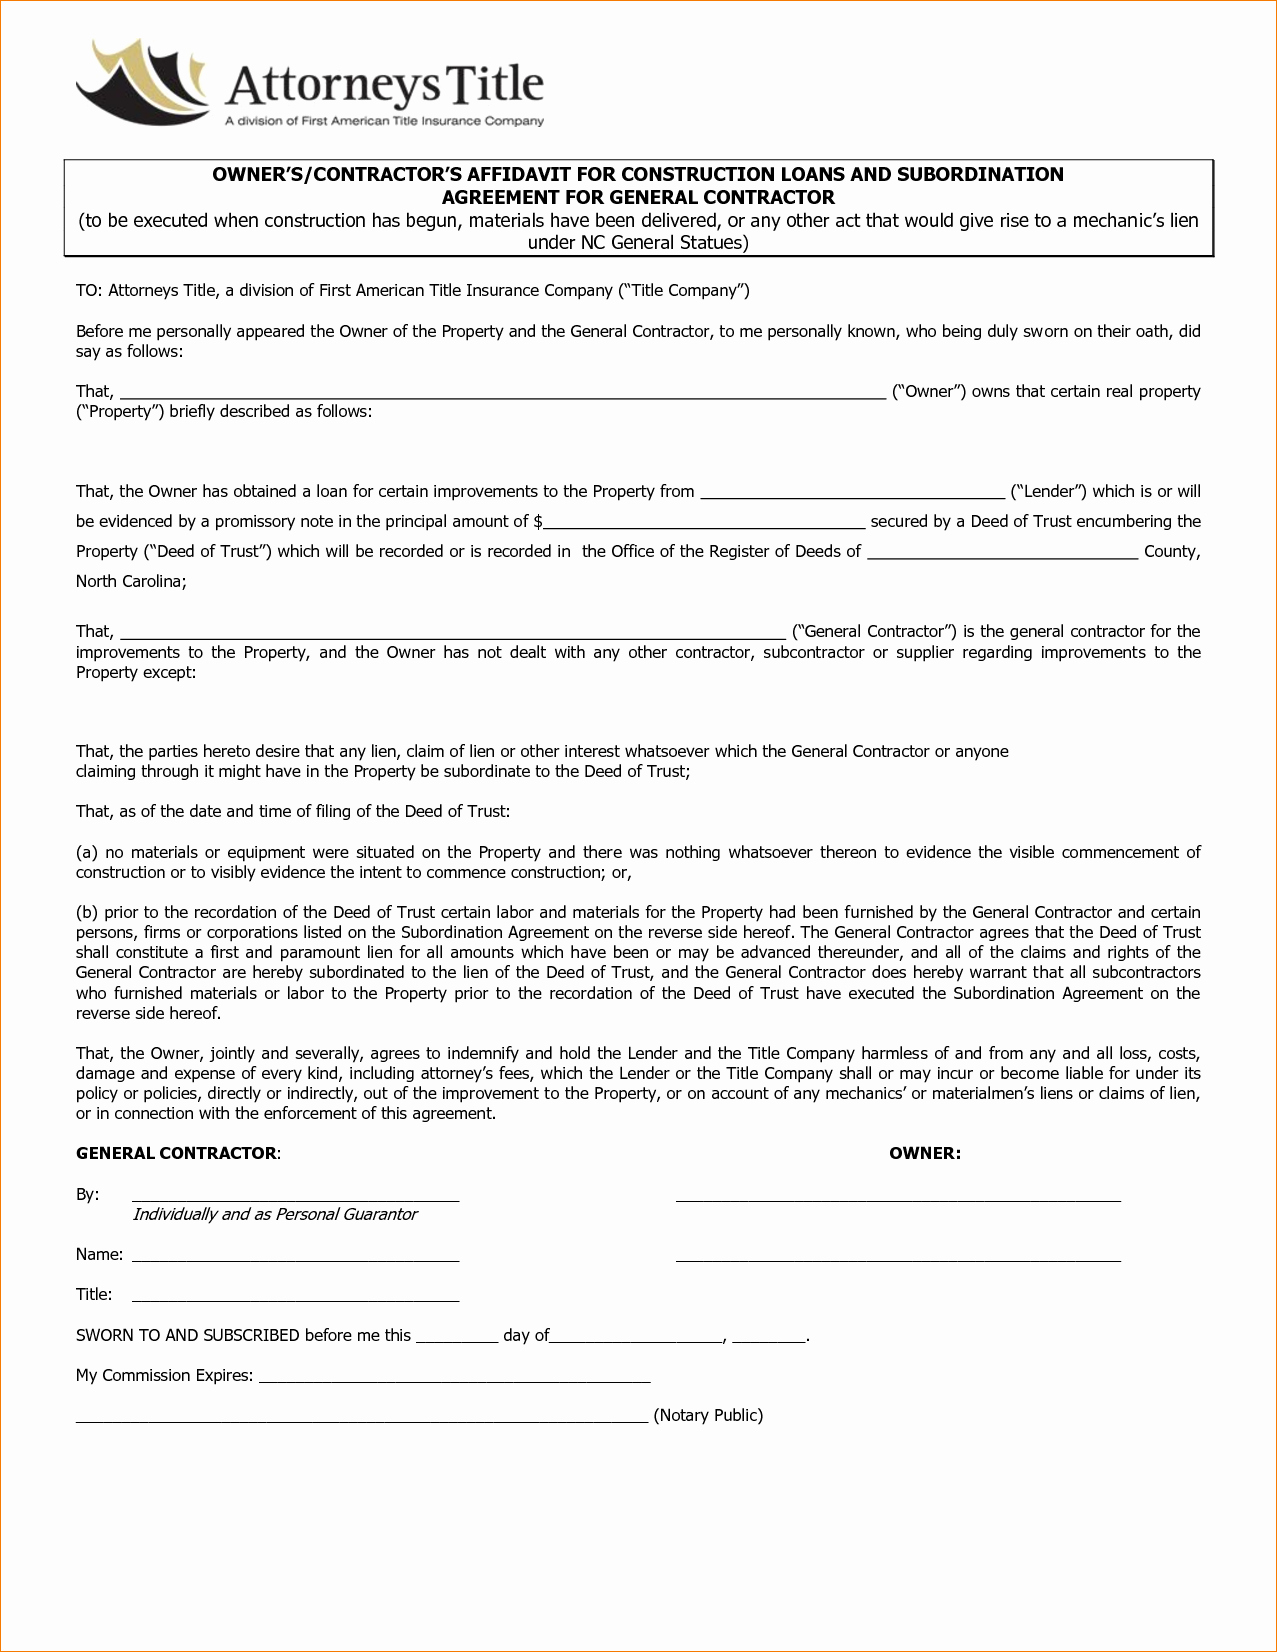 Bid Template for Contractors Beautiful Contractor Agreement Template Featuring General Contractor